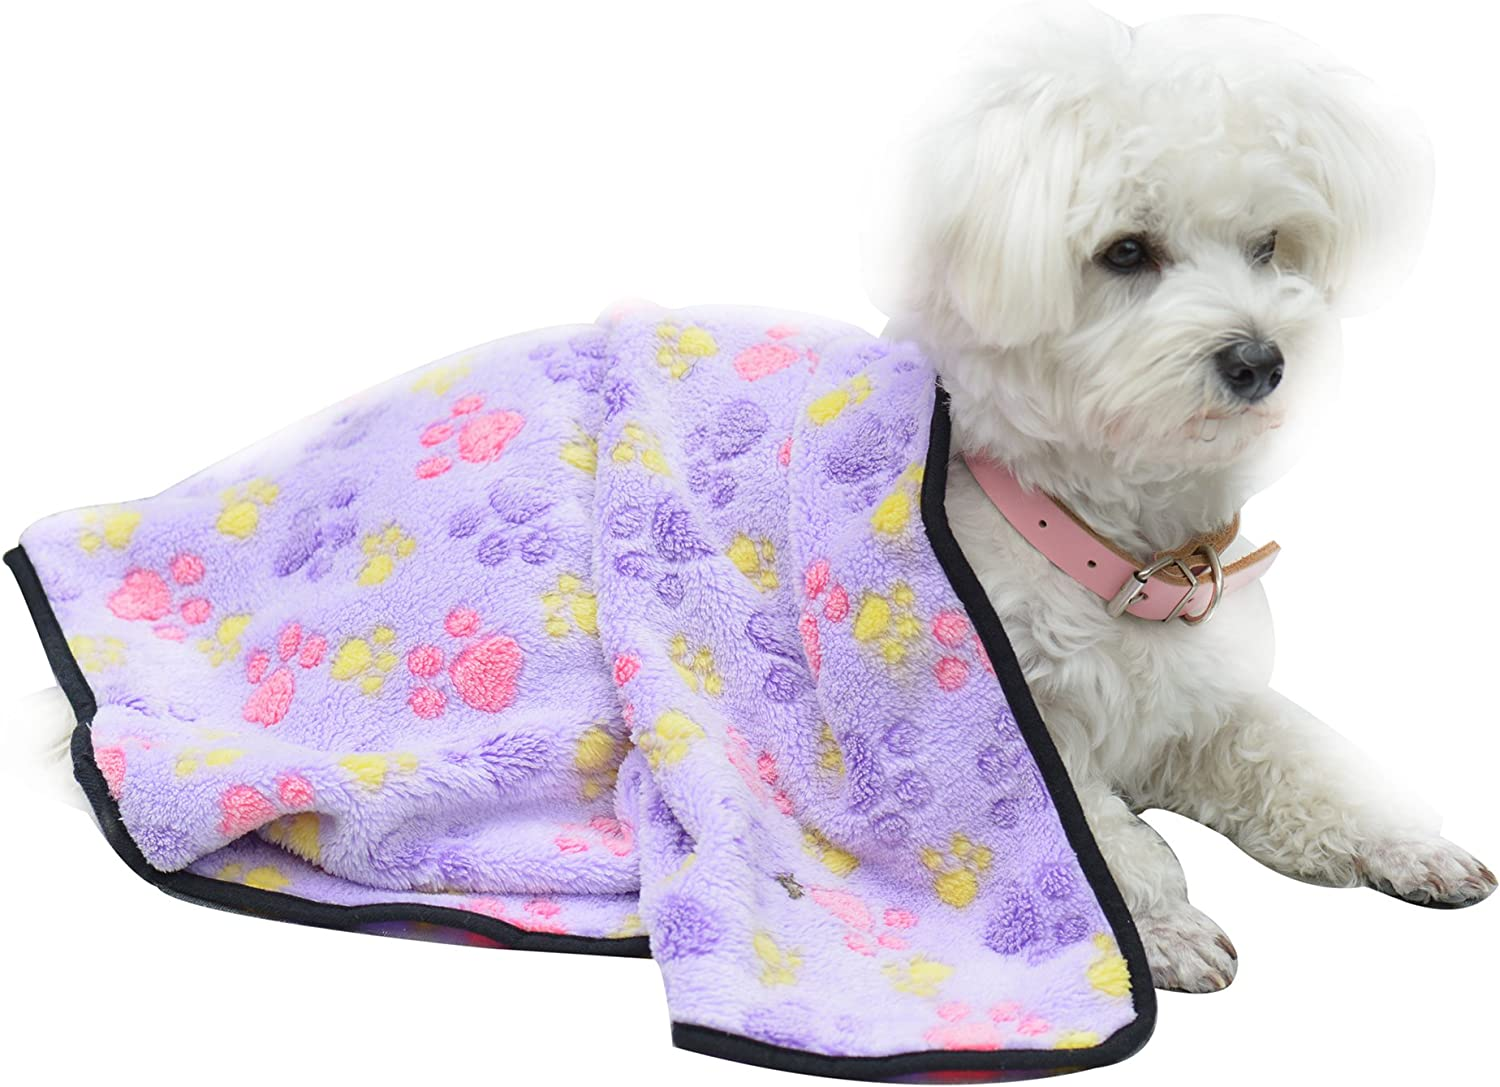 EXPAWLORER Pet Thick Blanket - Super Soft Premium Plush Blanket for Small Cats & Dogs: Home & Kitchen